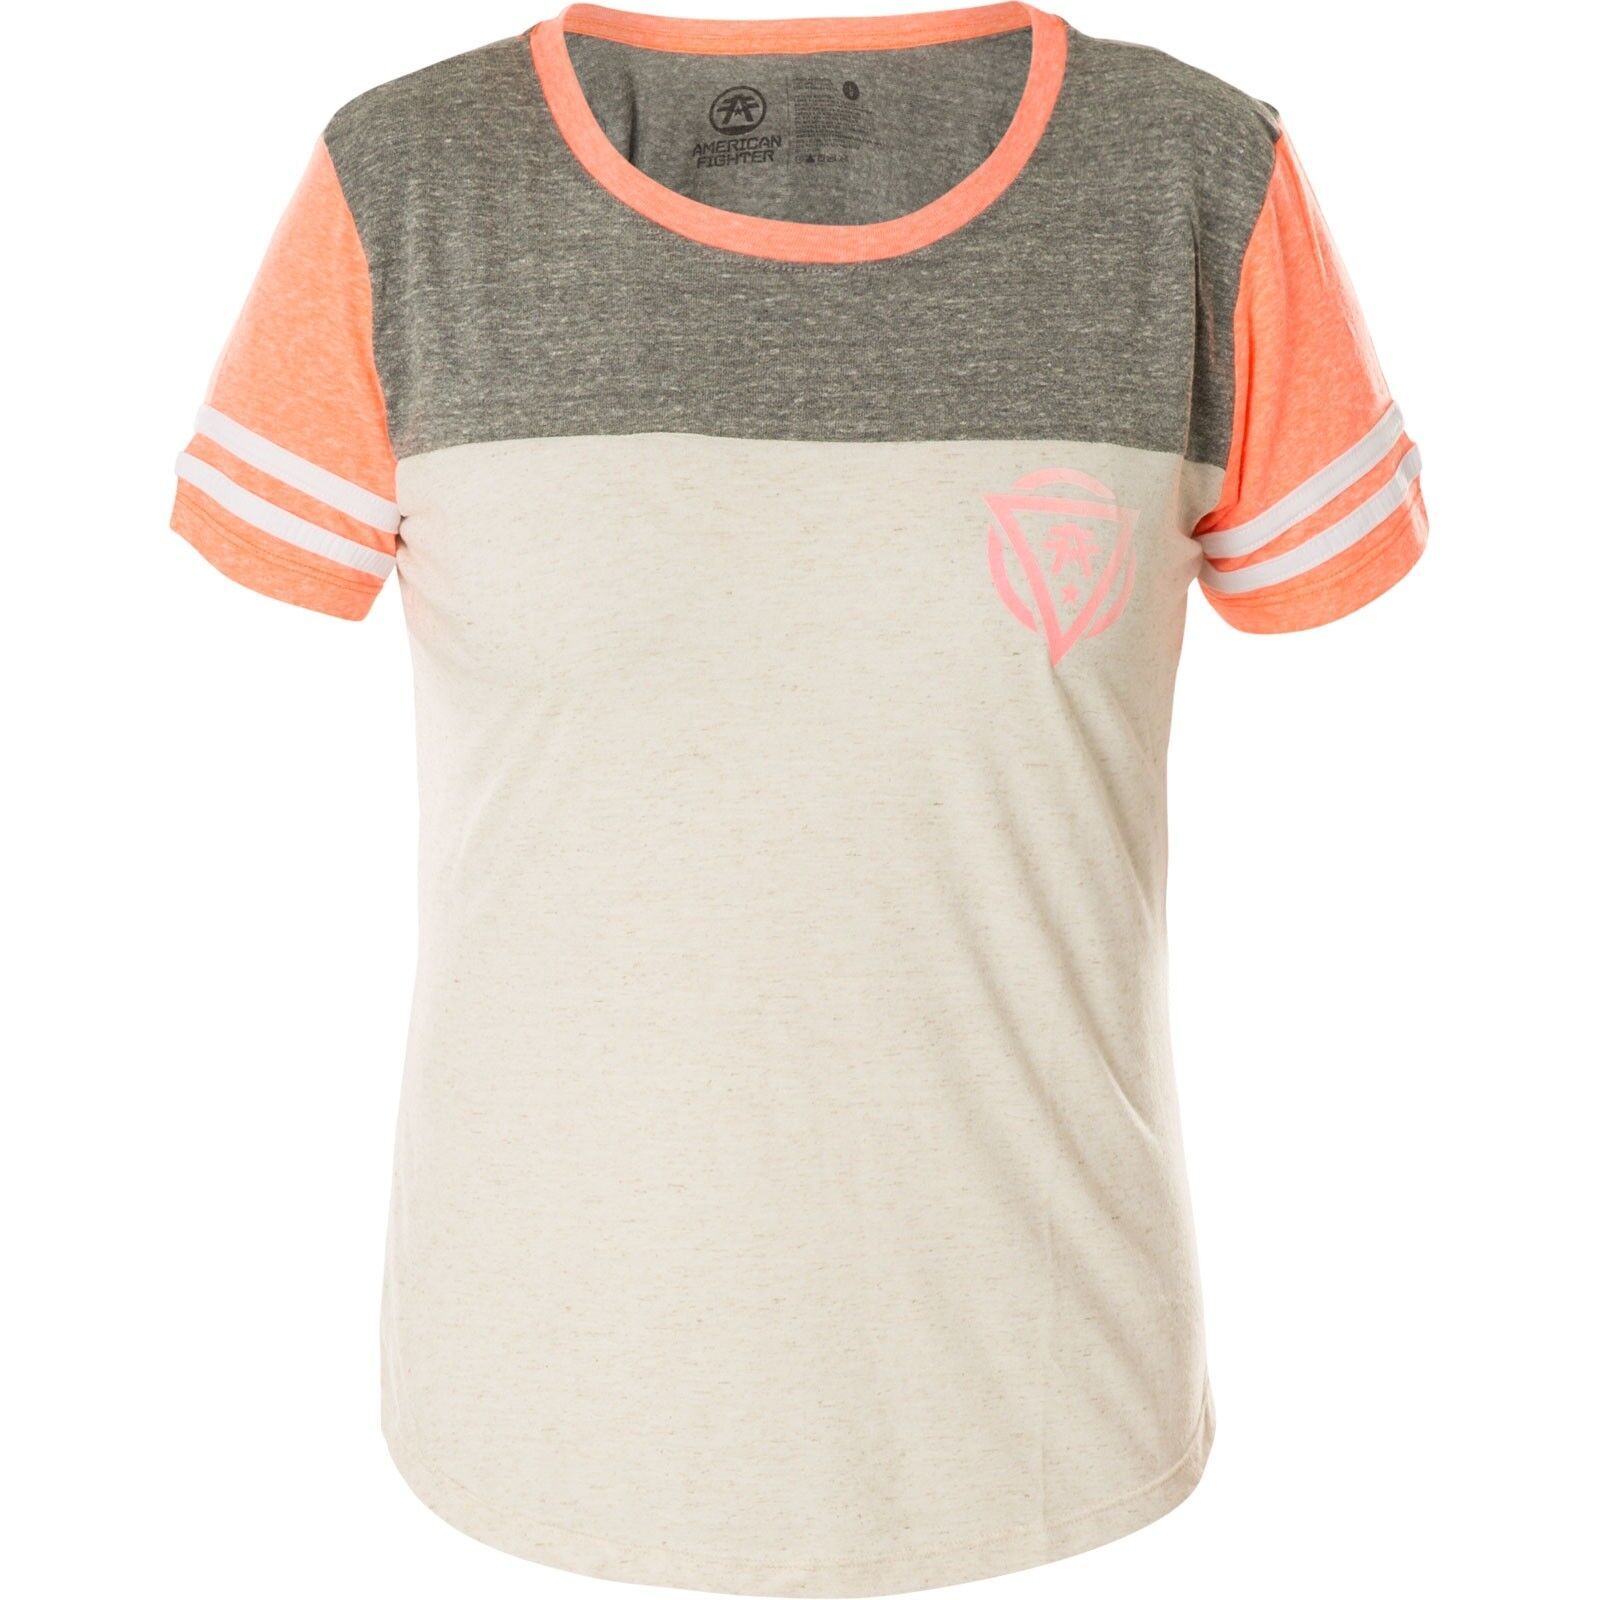 American Fighter Affliction Donna Donna Donna T-shirt New Messico Beige Grigio cb27f1